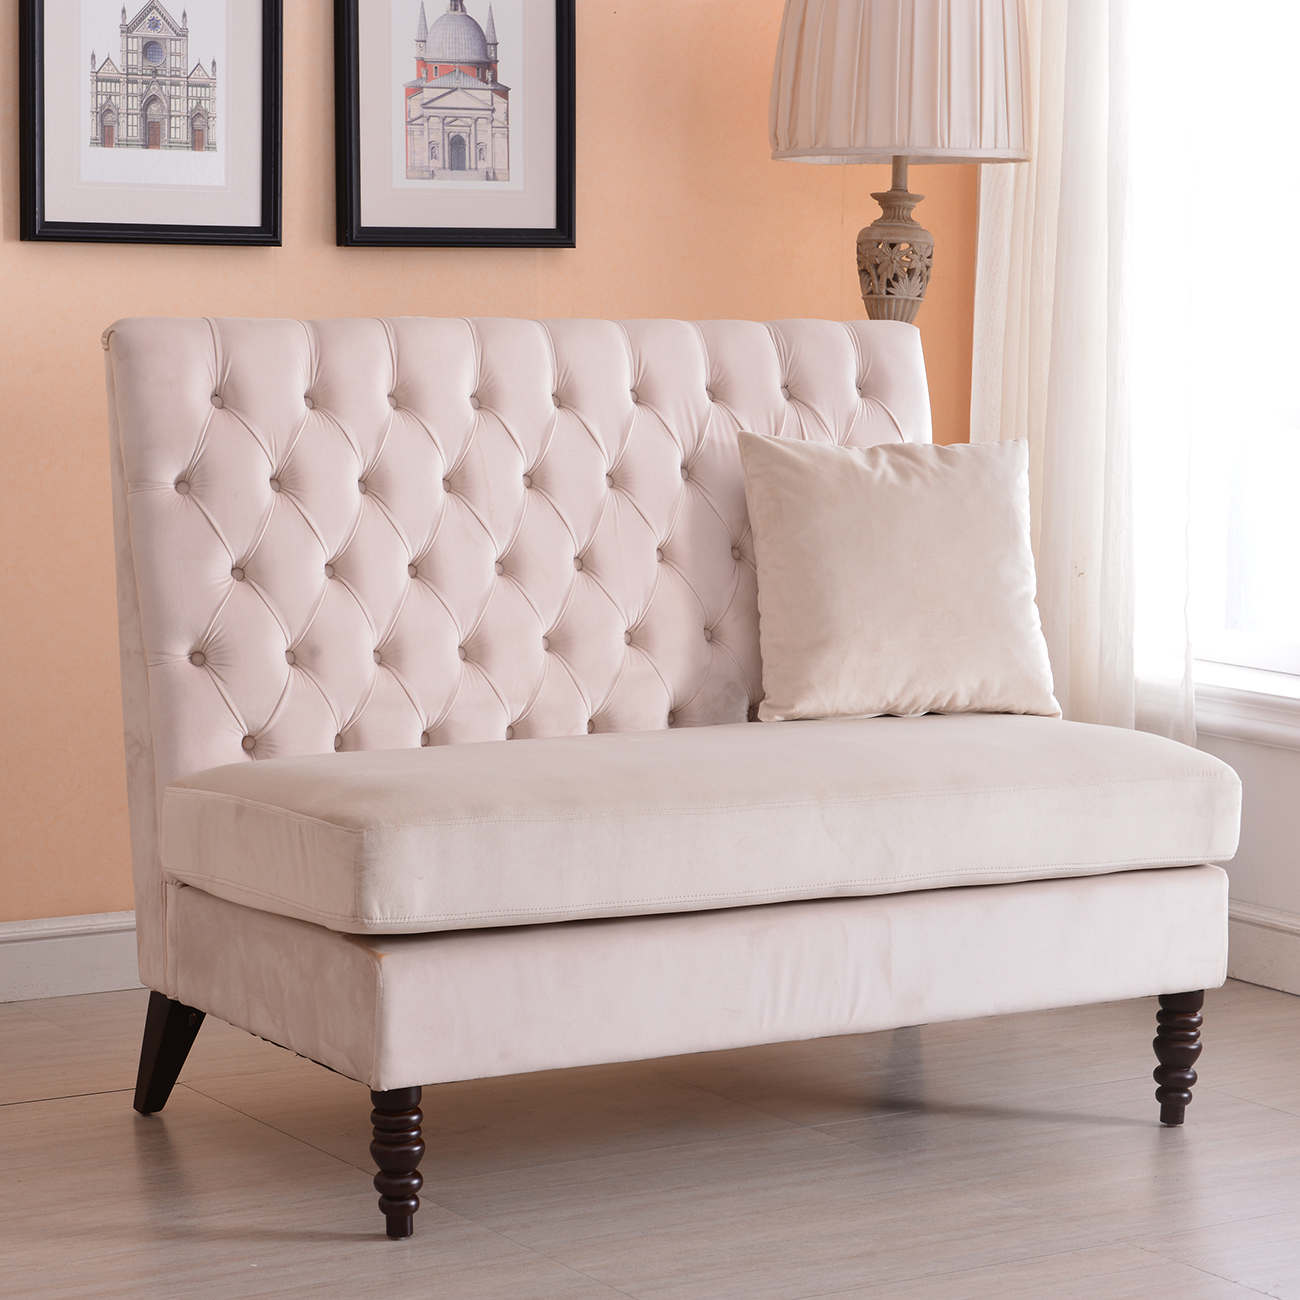 Tufted High Back Chair Details About Velvet Modern Tufted Settee Bench Bedroom Sofa High Back Love Seat Beige Gray